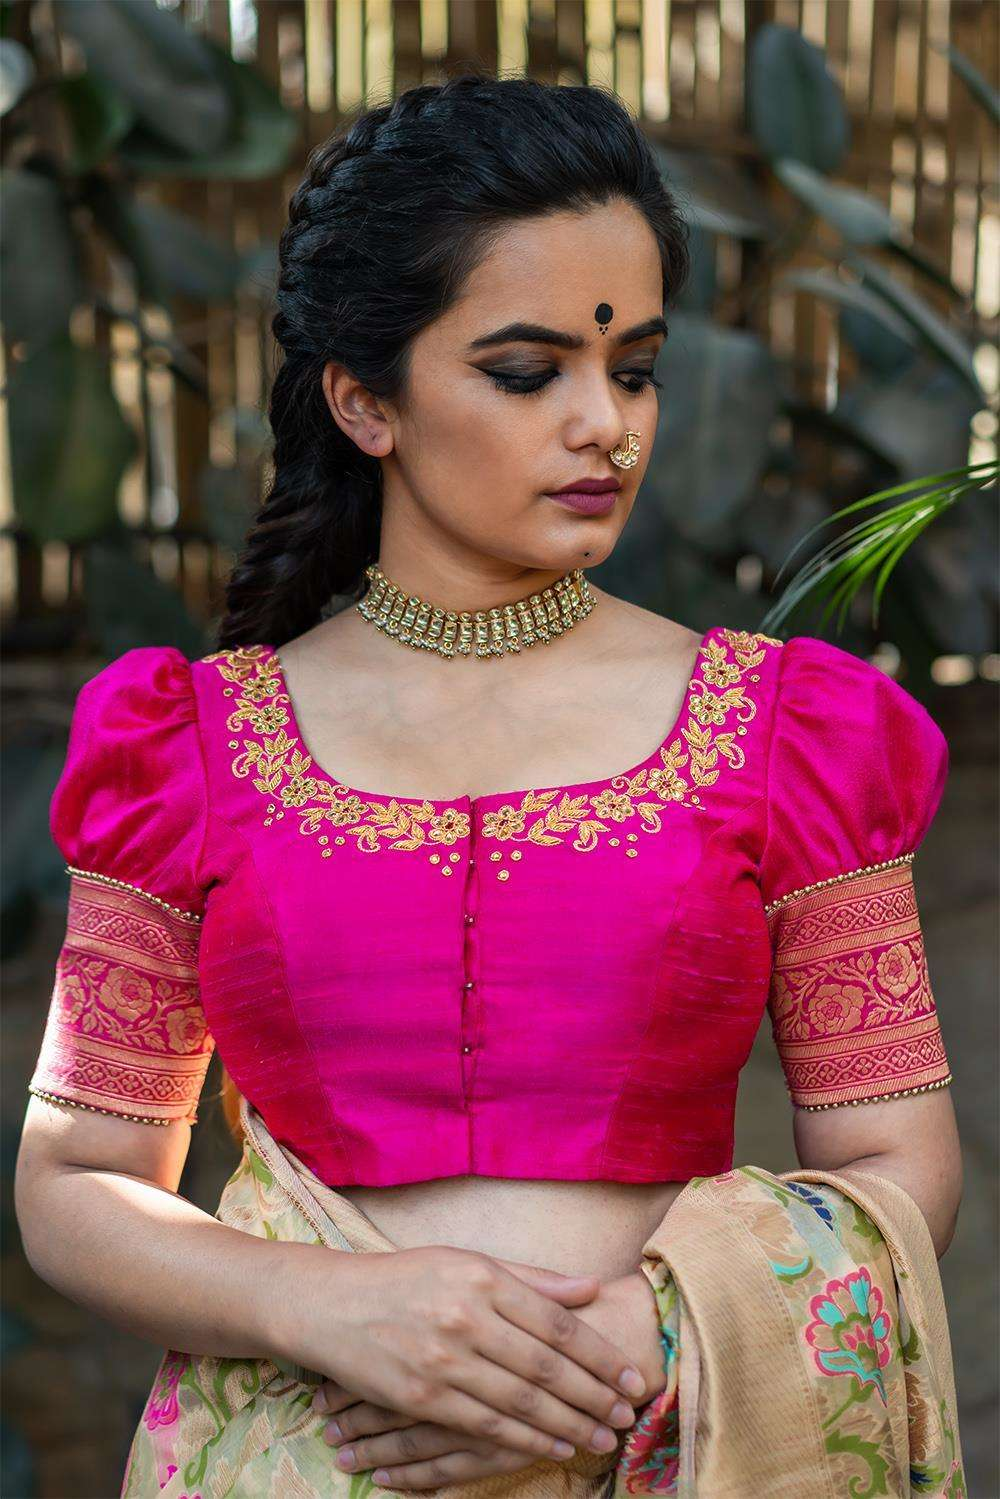 Jijabai - Hand embroidered blouse - House of Blouse